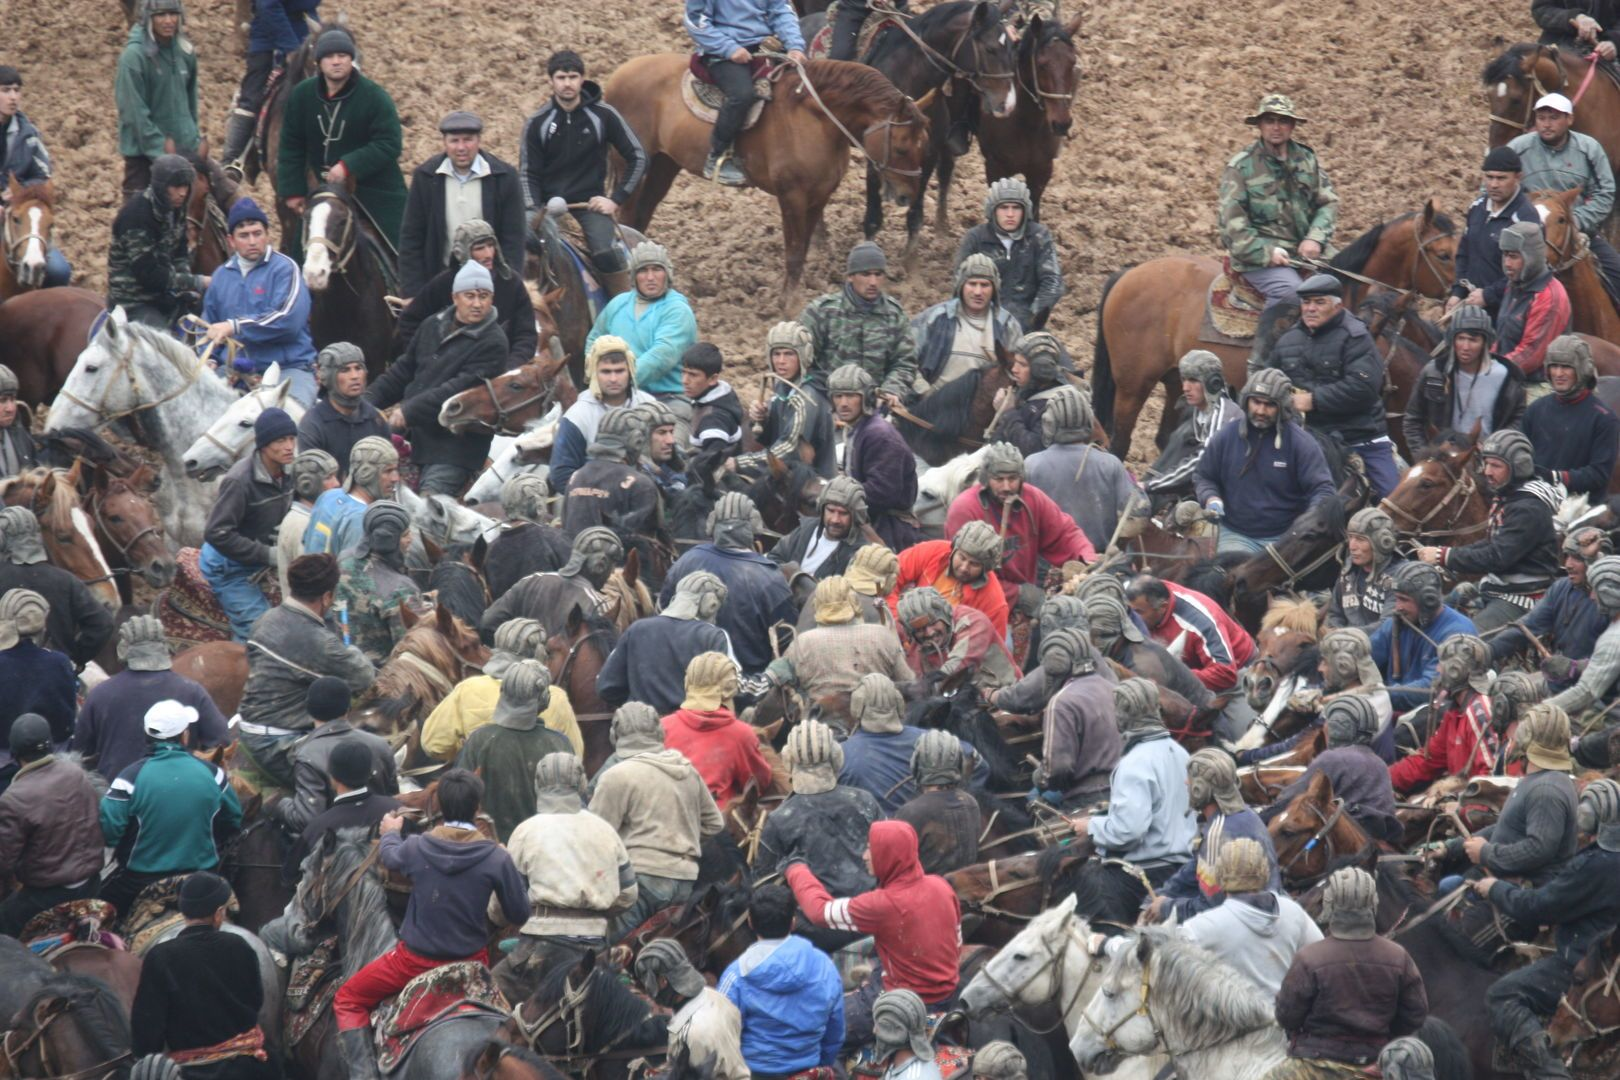 Central Asia festival, horse-game